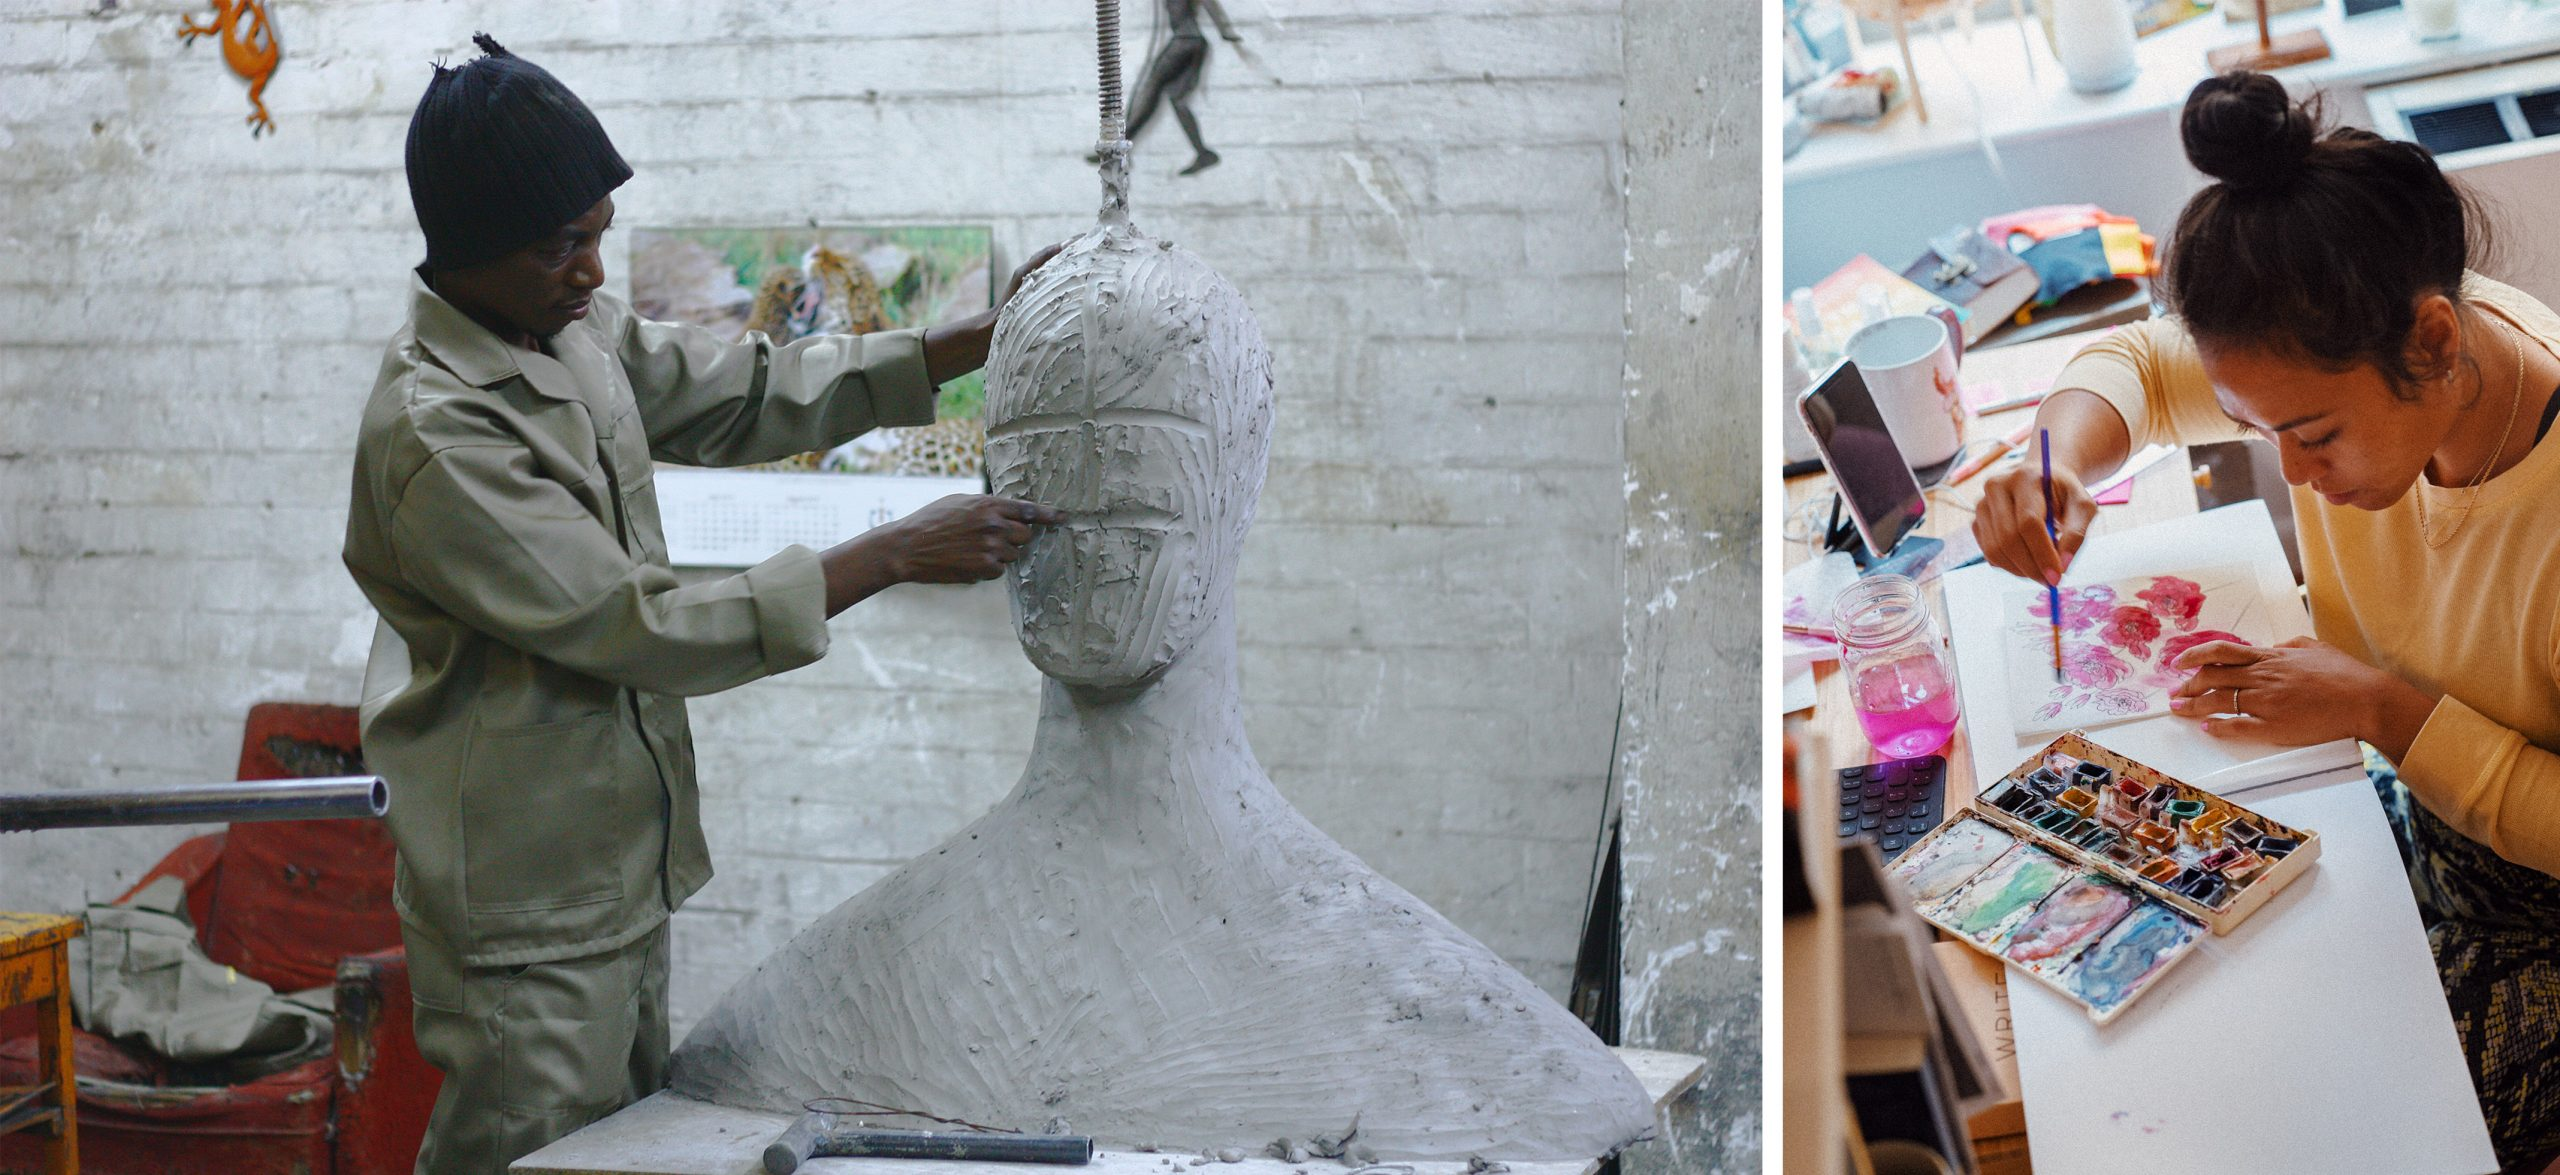 Image of man sculpting a head and a woman using water colour paints